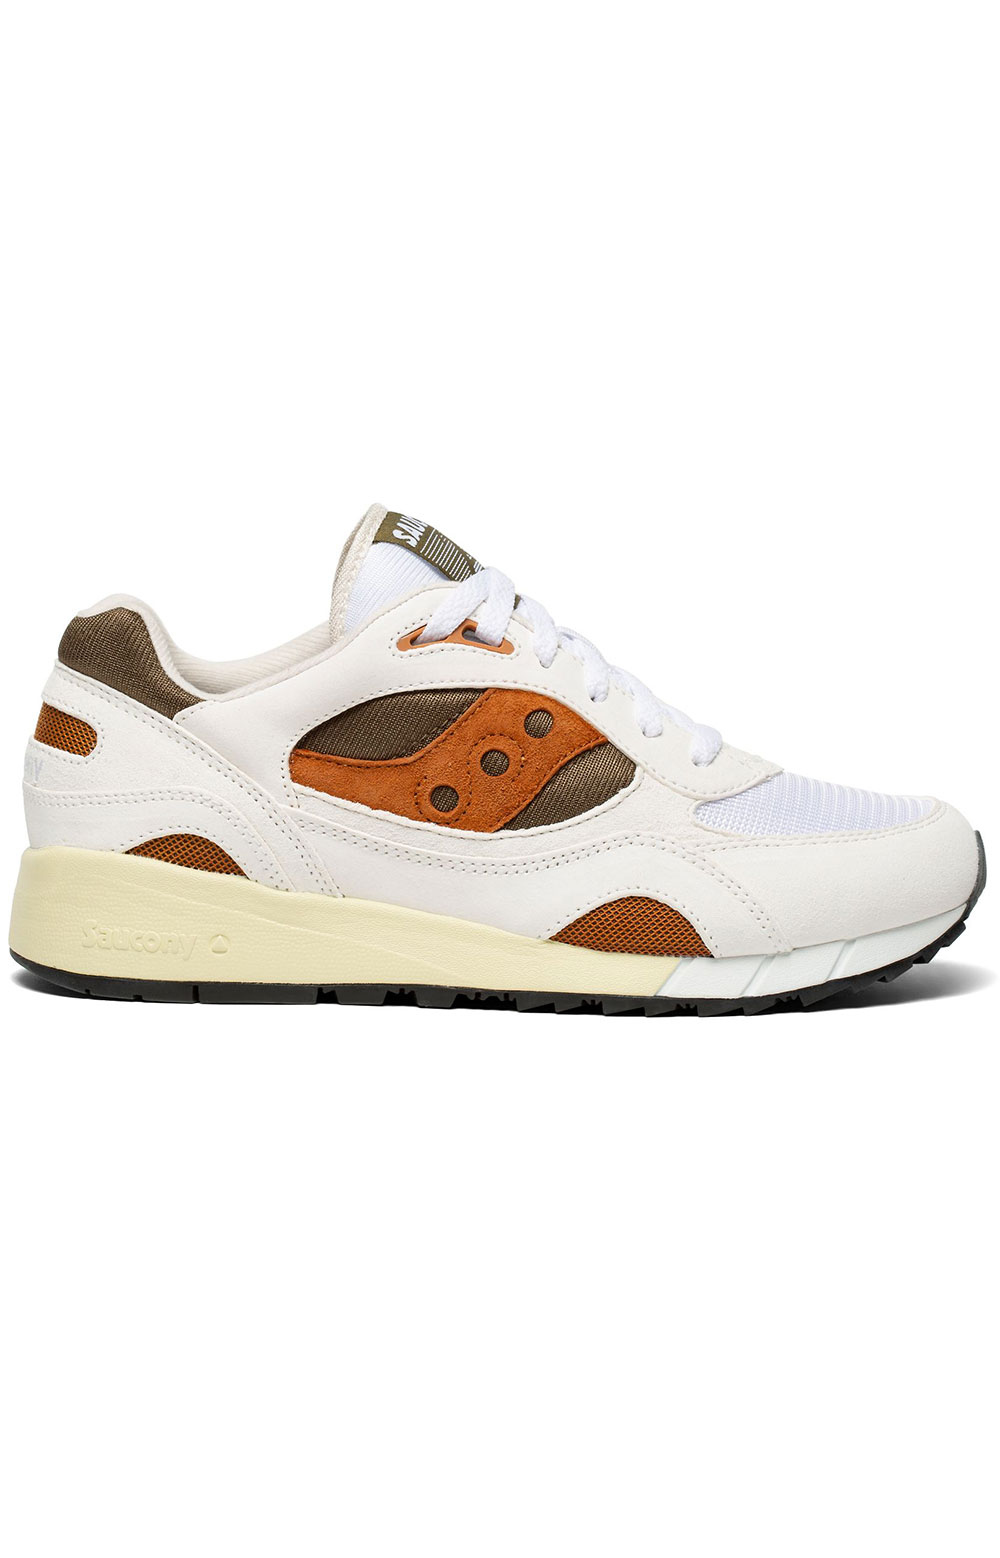 (S70441-14) Shadow 6000 Shoes - White/Rust